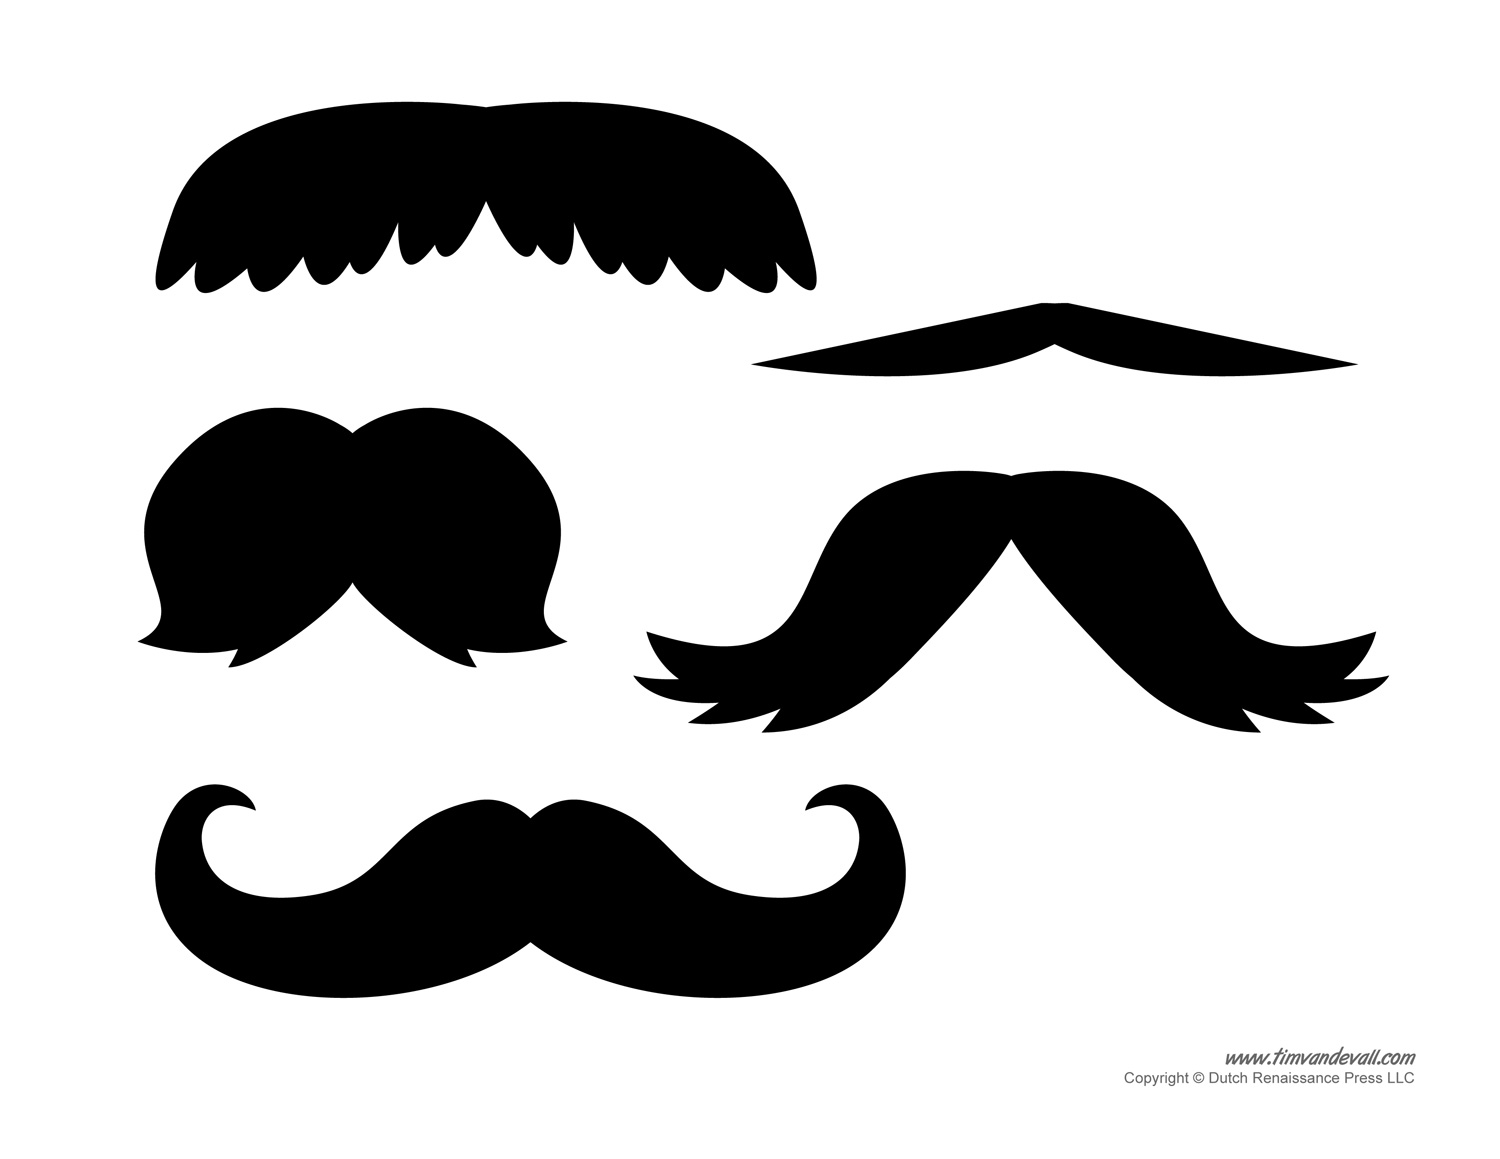 Printable mustache templates mustaches for kids for Mustache templates printable